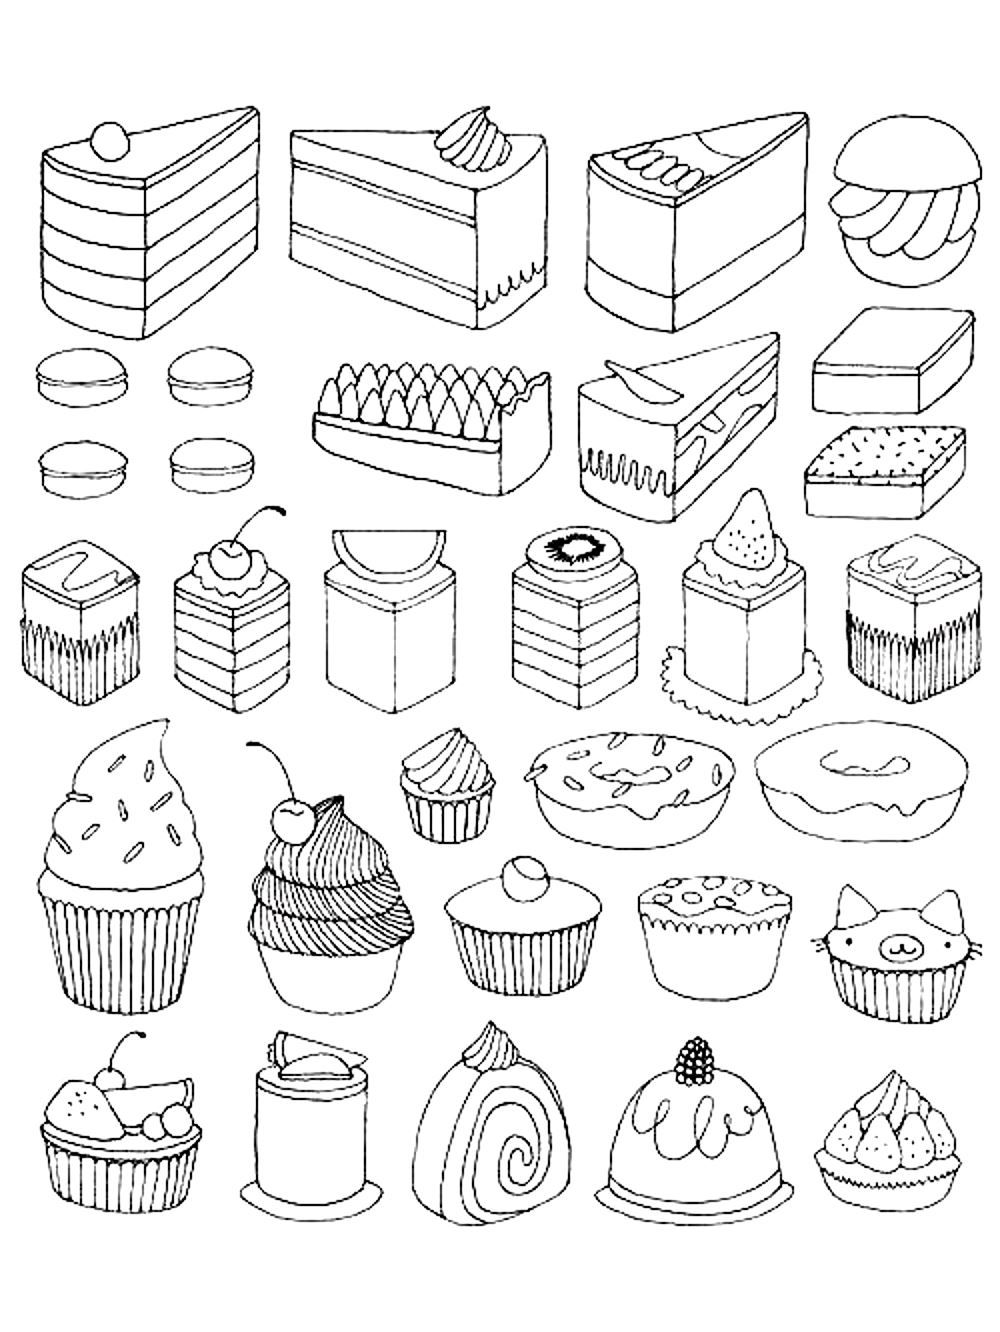 free coloring page coloring adult cupcakes and little cakes delicious little cupcakes and other Bakery Coloring Pages for Adults  Coloring Pages Bakery